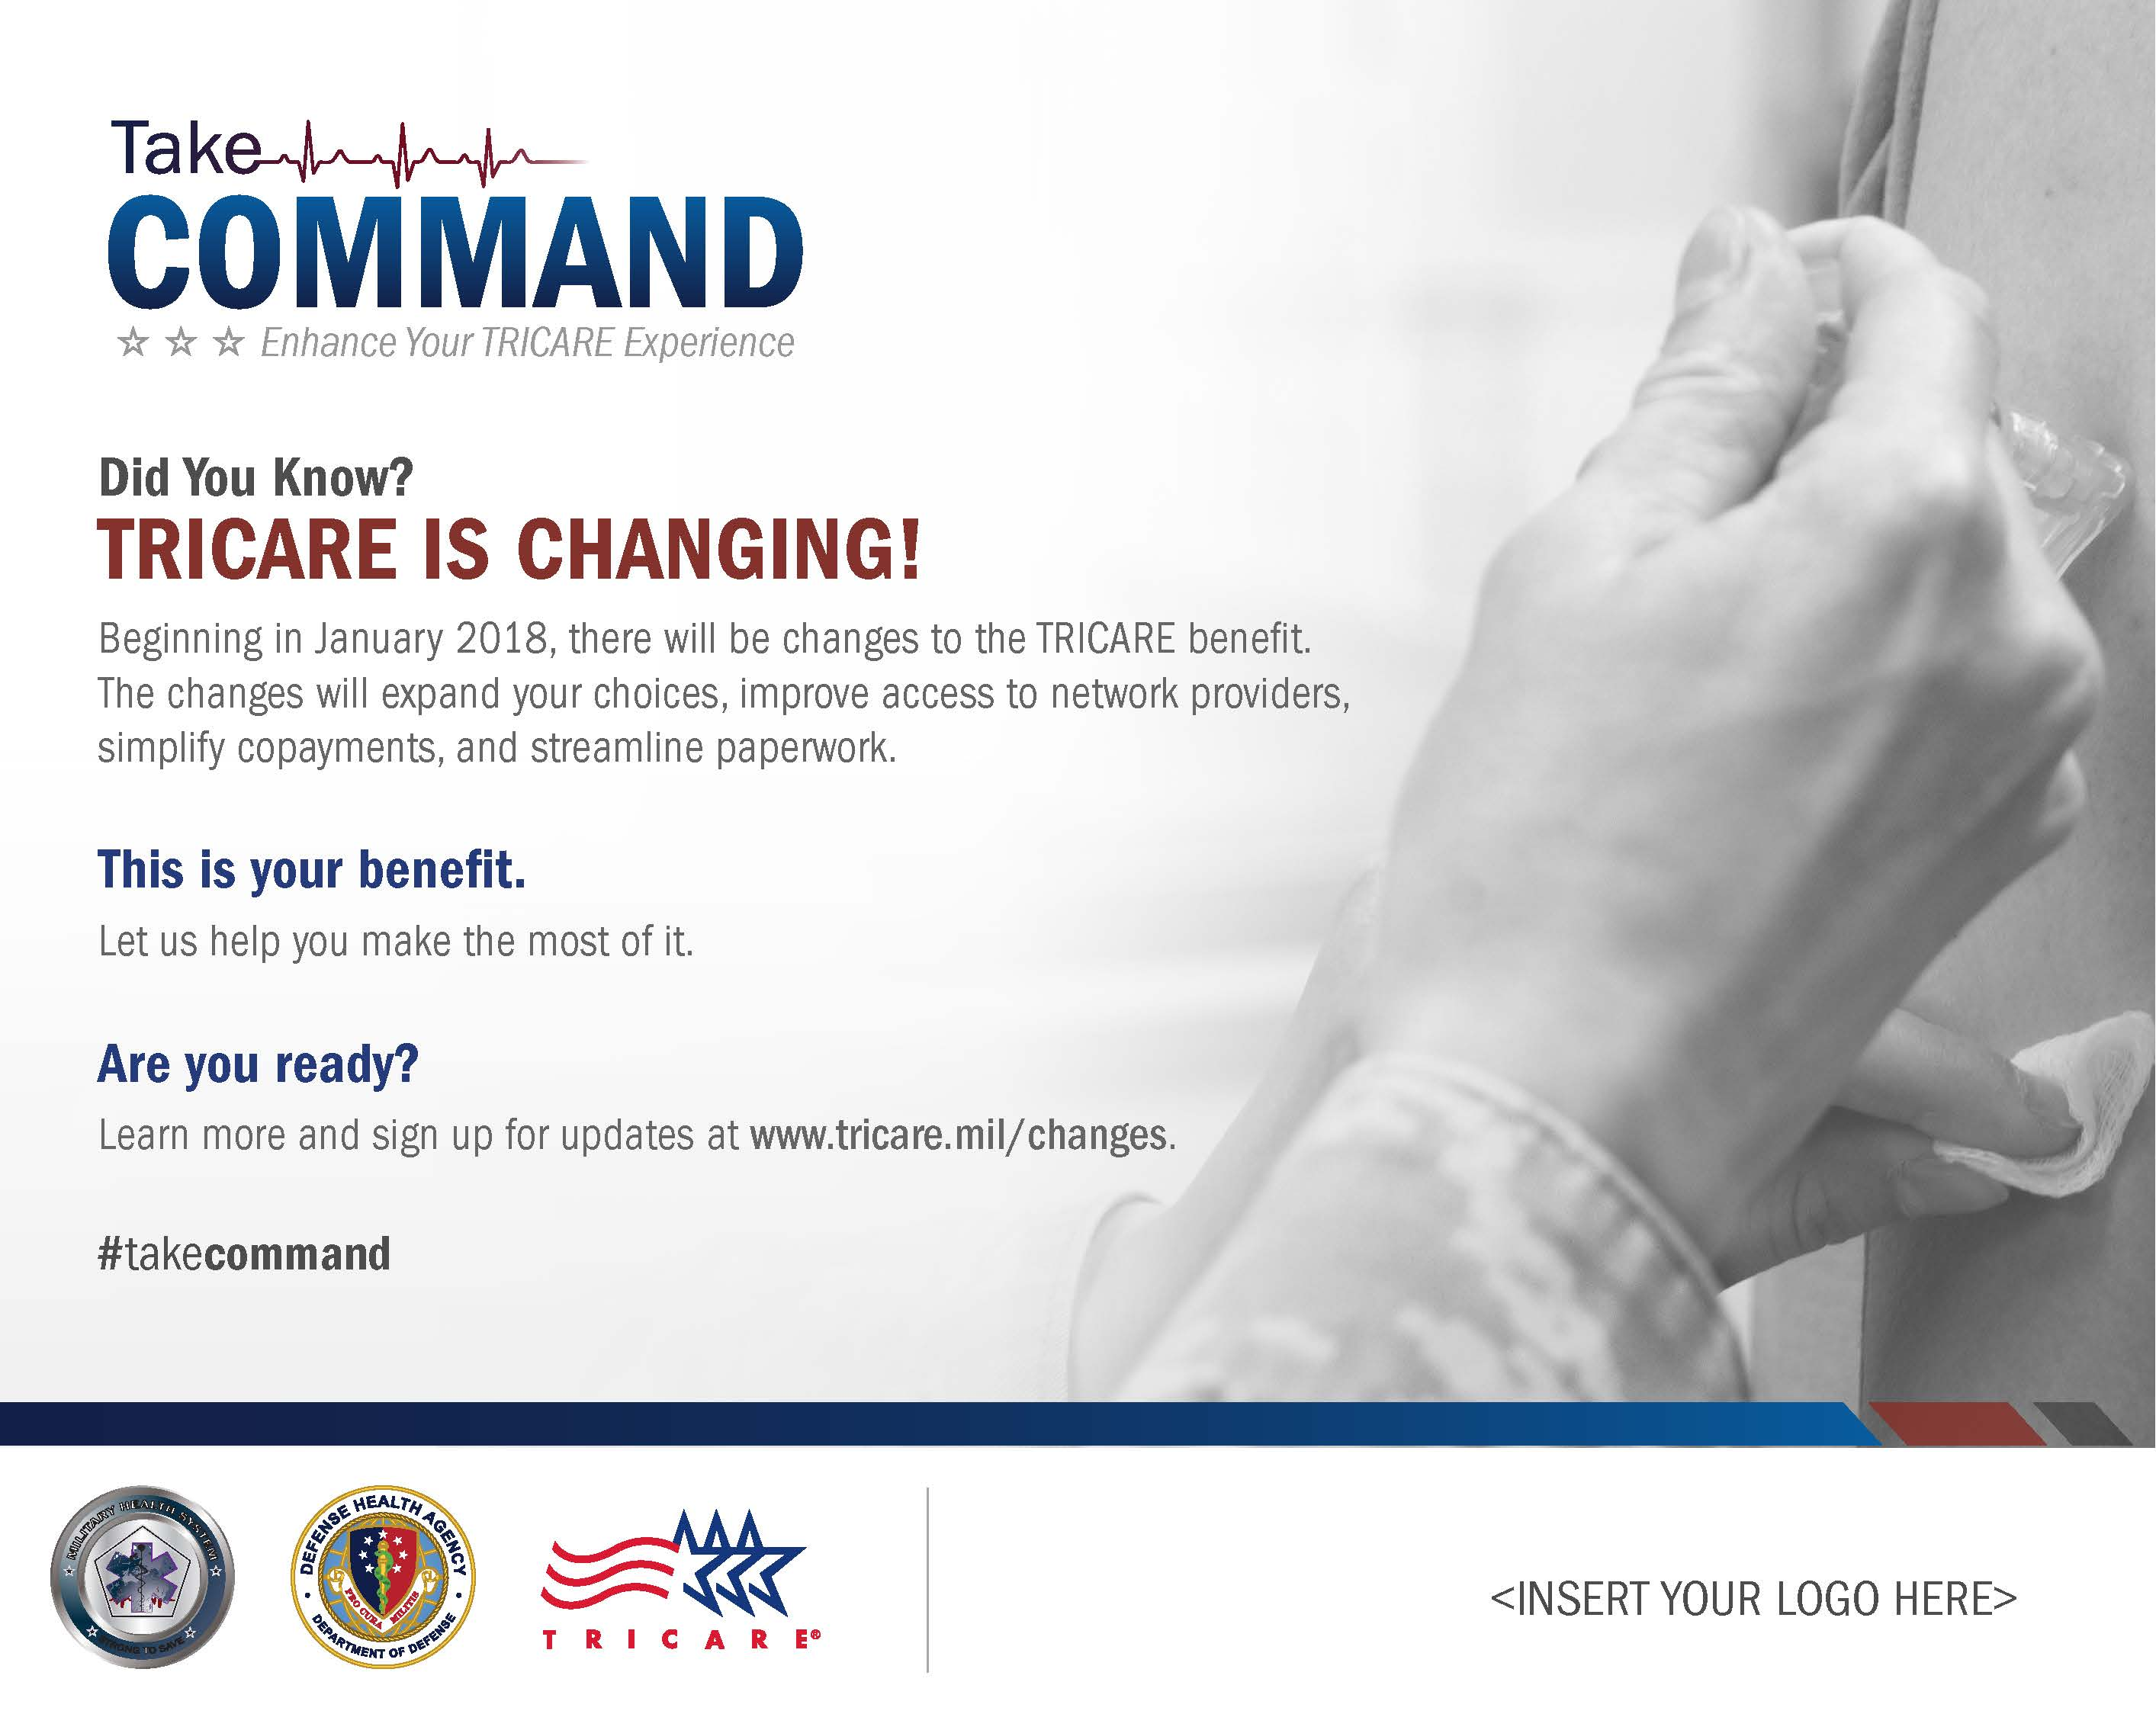 Tricare network providers